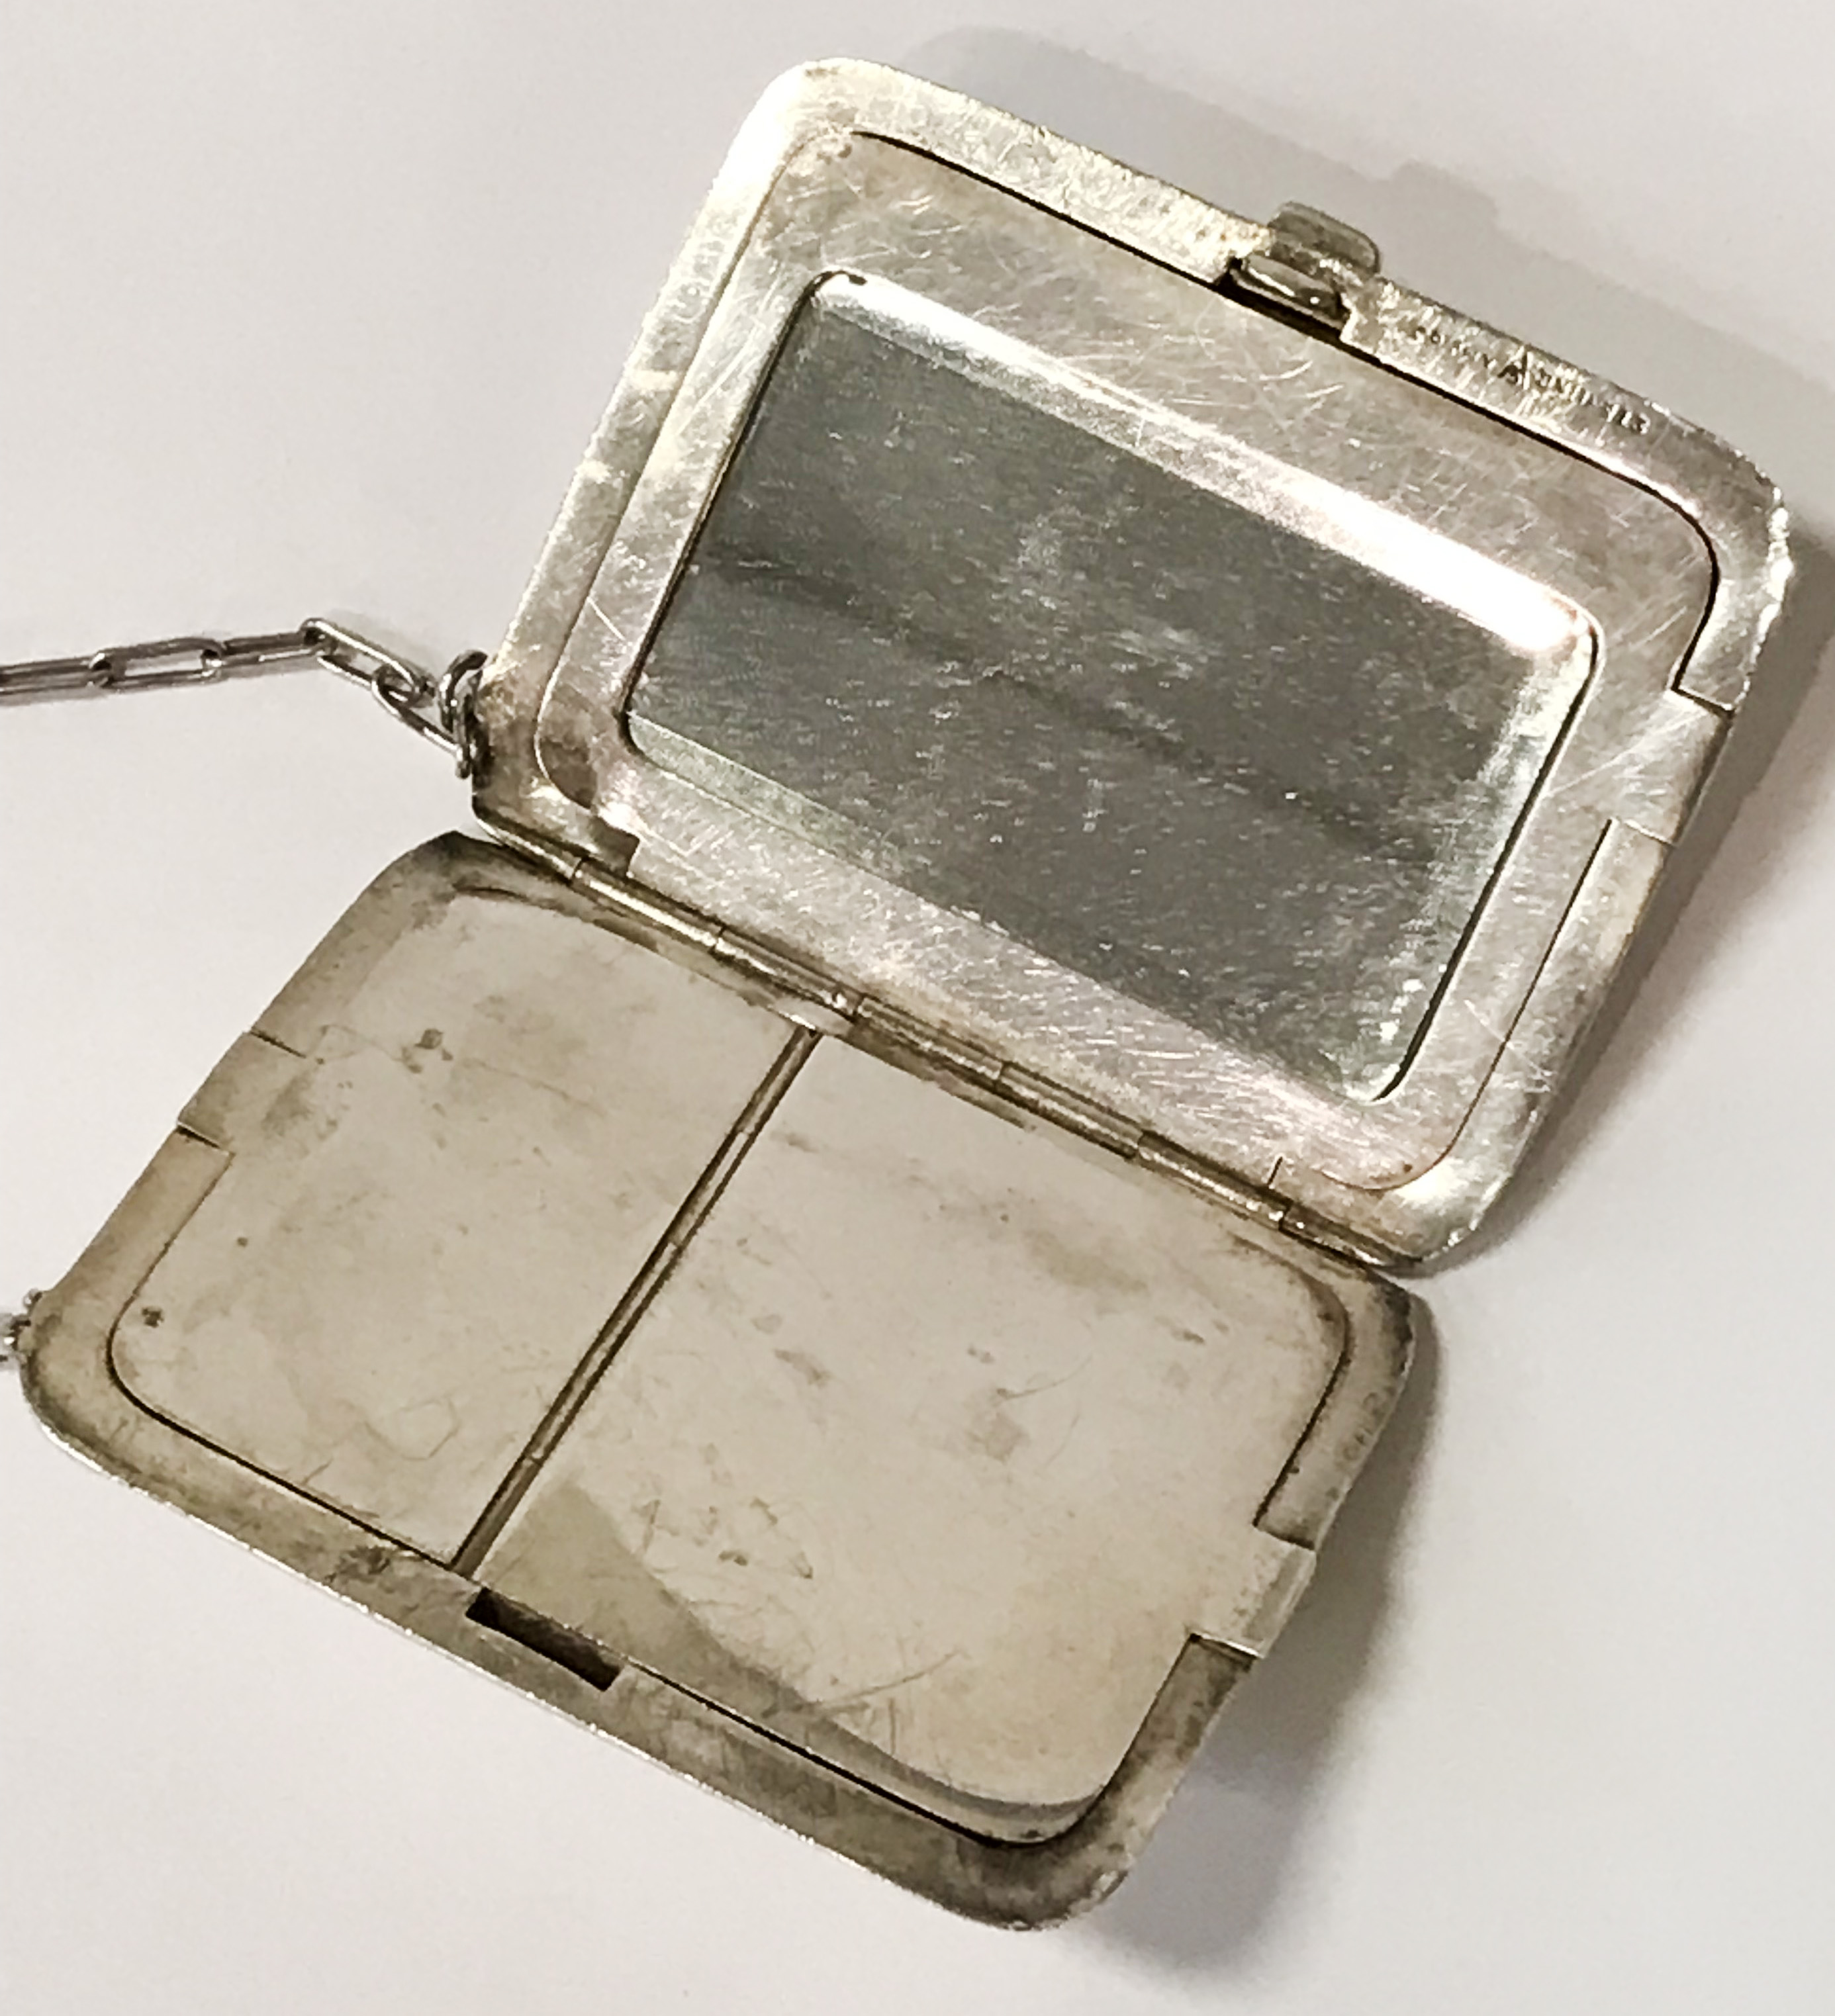 HM SILVER & GOLD INLAID COMPACT - 9CMS X 6.5CMS - Image 4 of 7